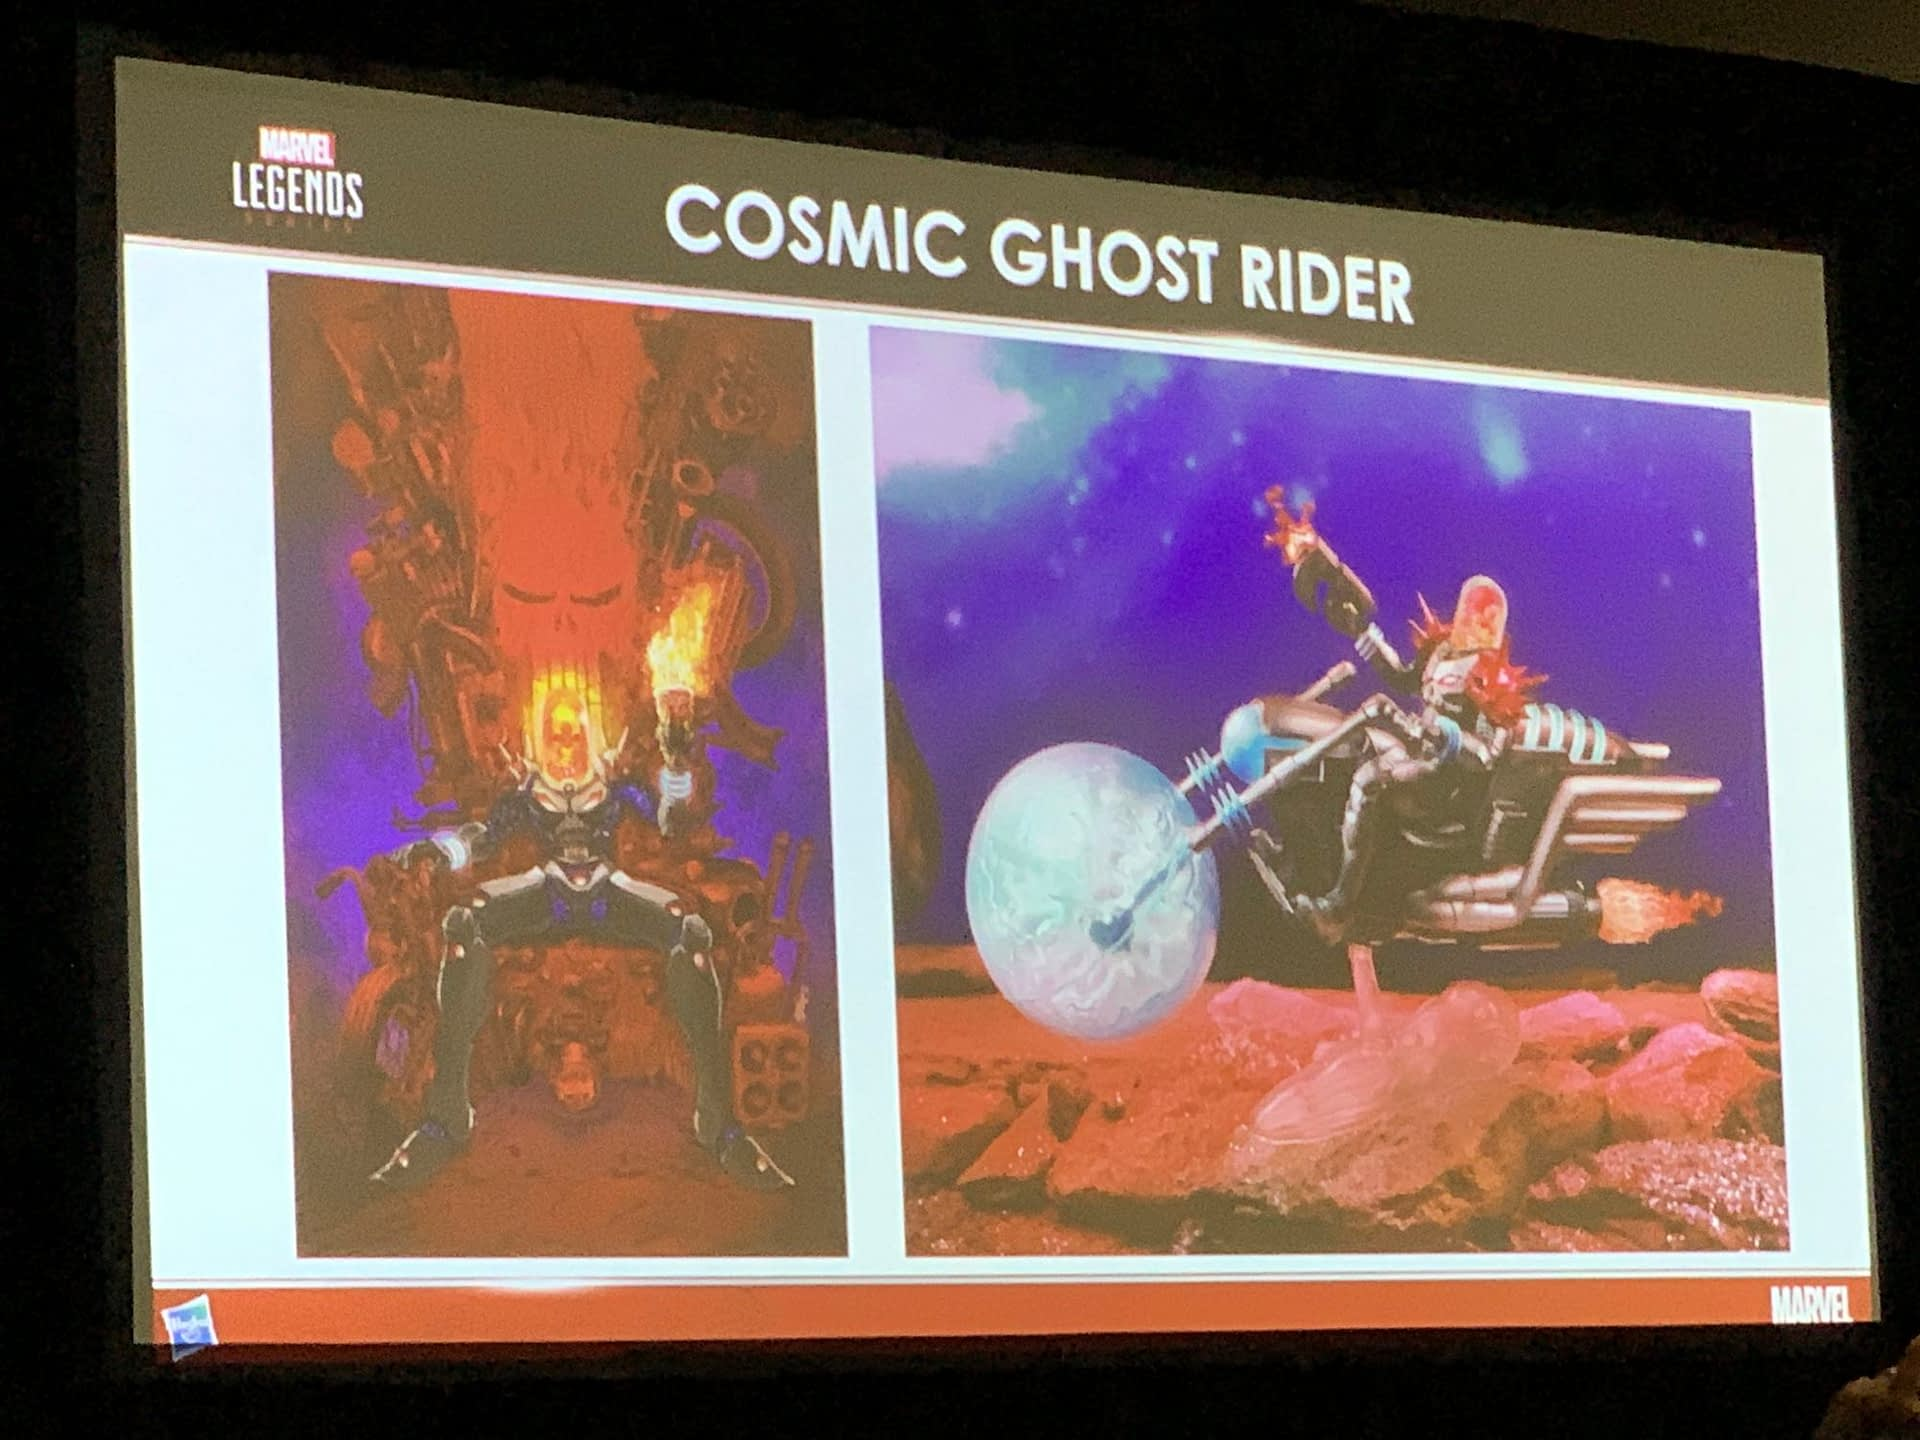 Marvel Legends Reveals Come Fast and Furious at Hasbro's SDCC Panel